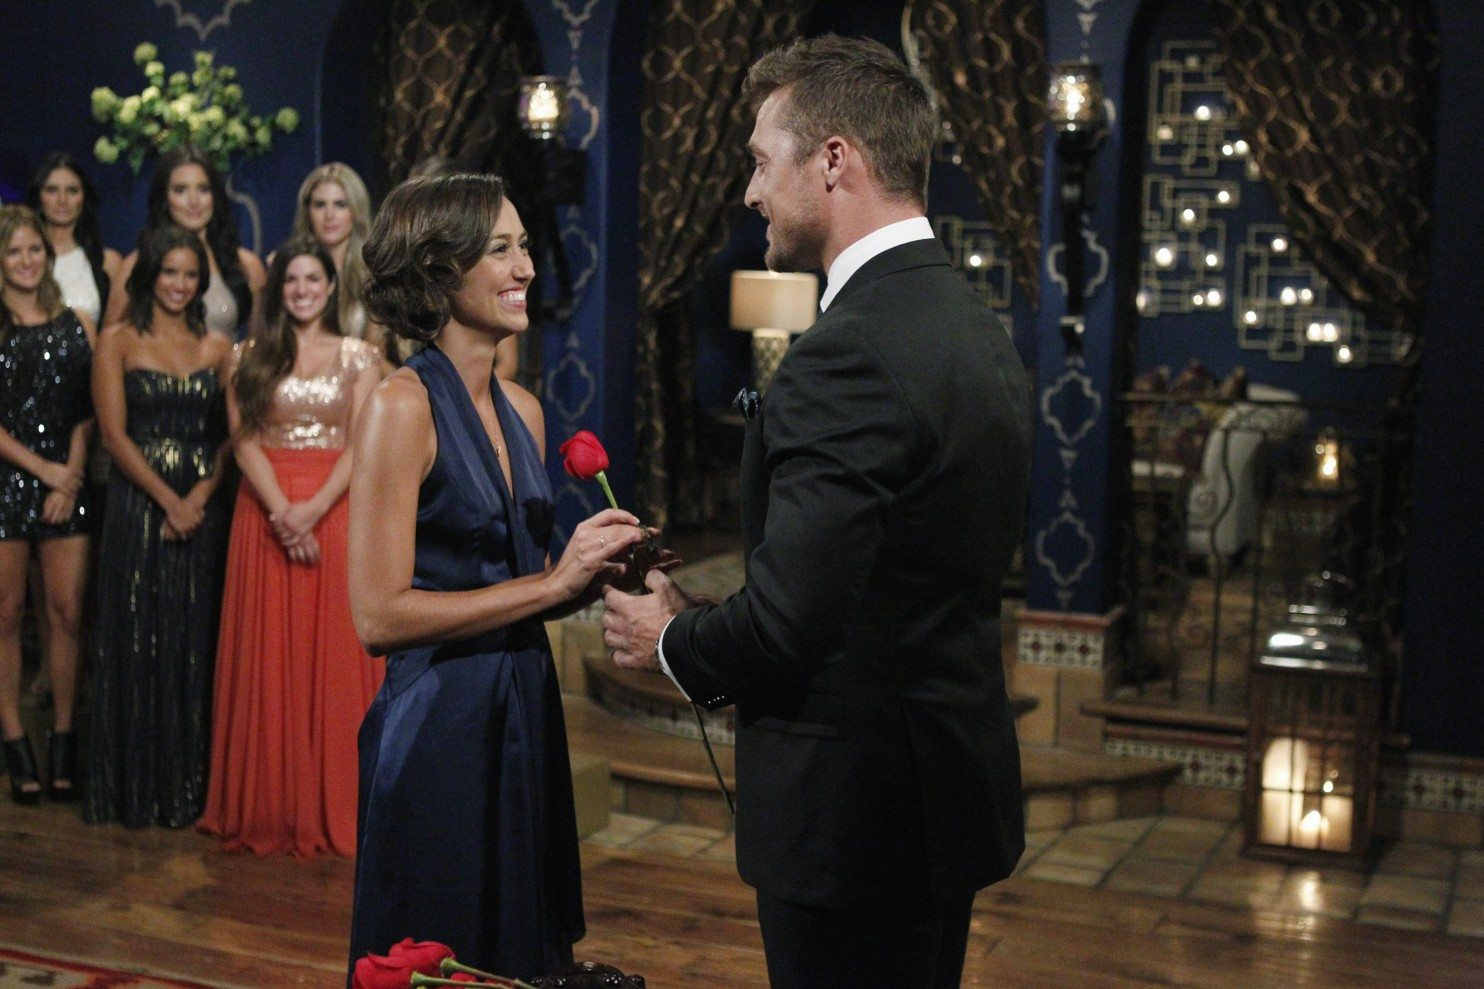 The Bachelor rose ceremony